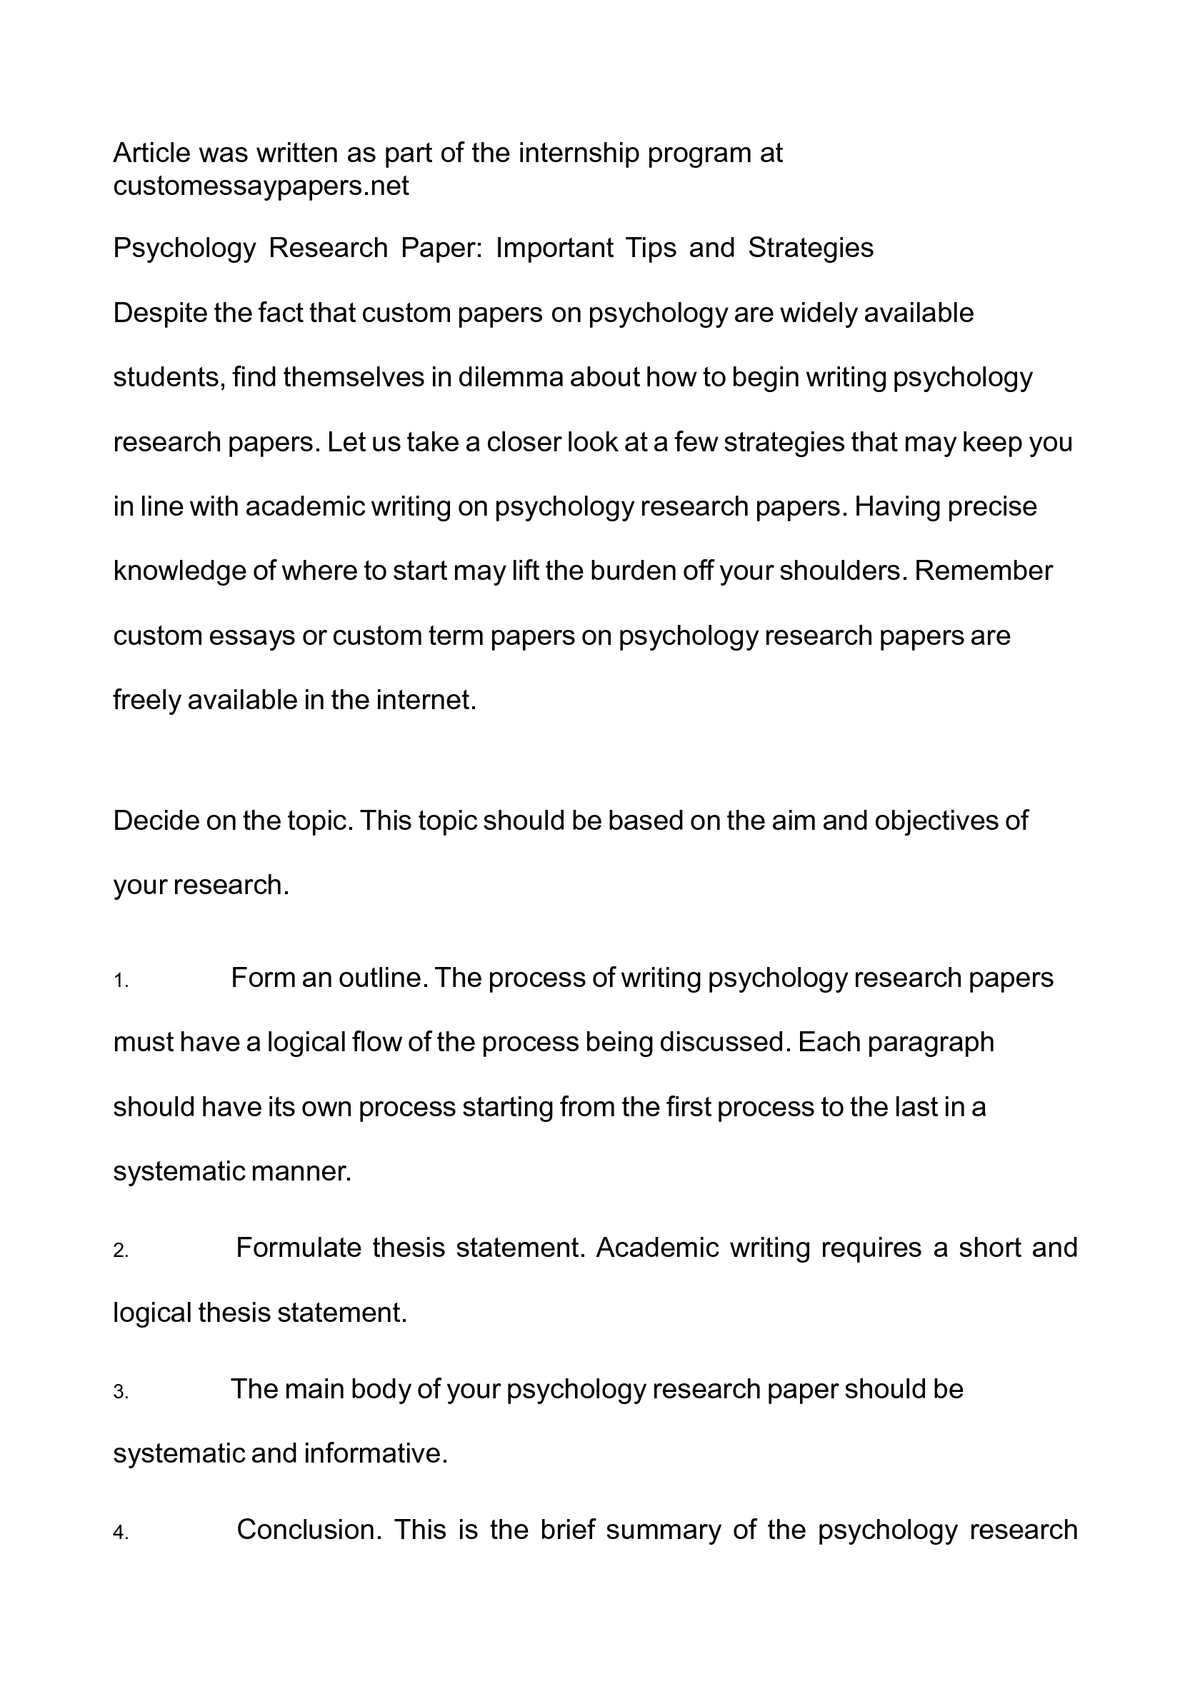 017 P1 Research Paper Psychology Topics Awesome List Topic Ideas